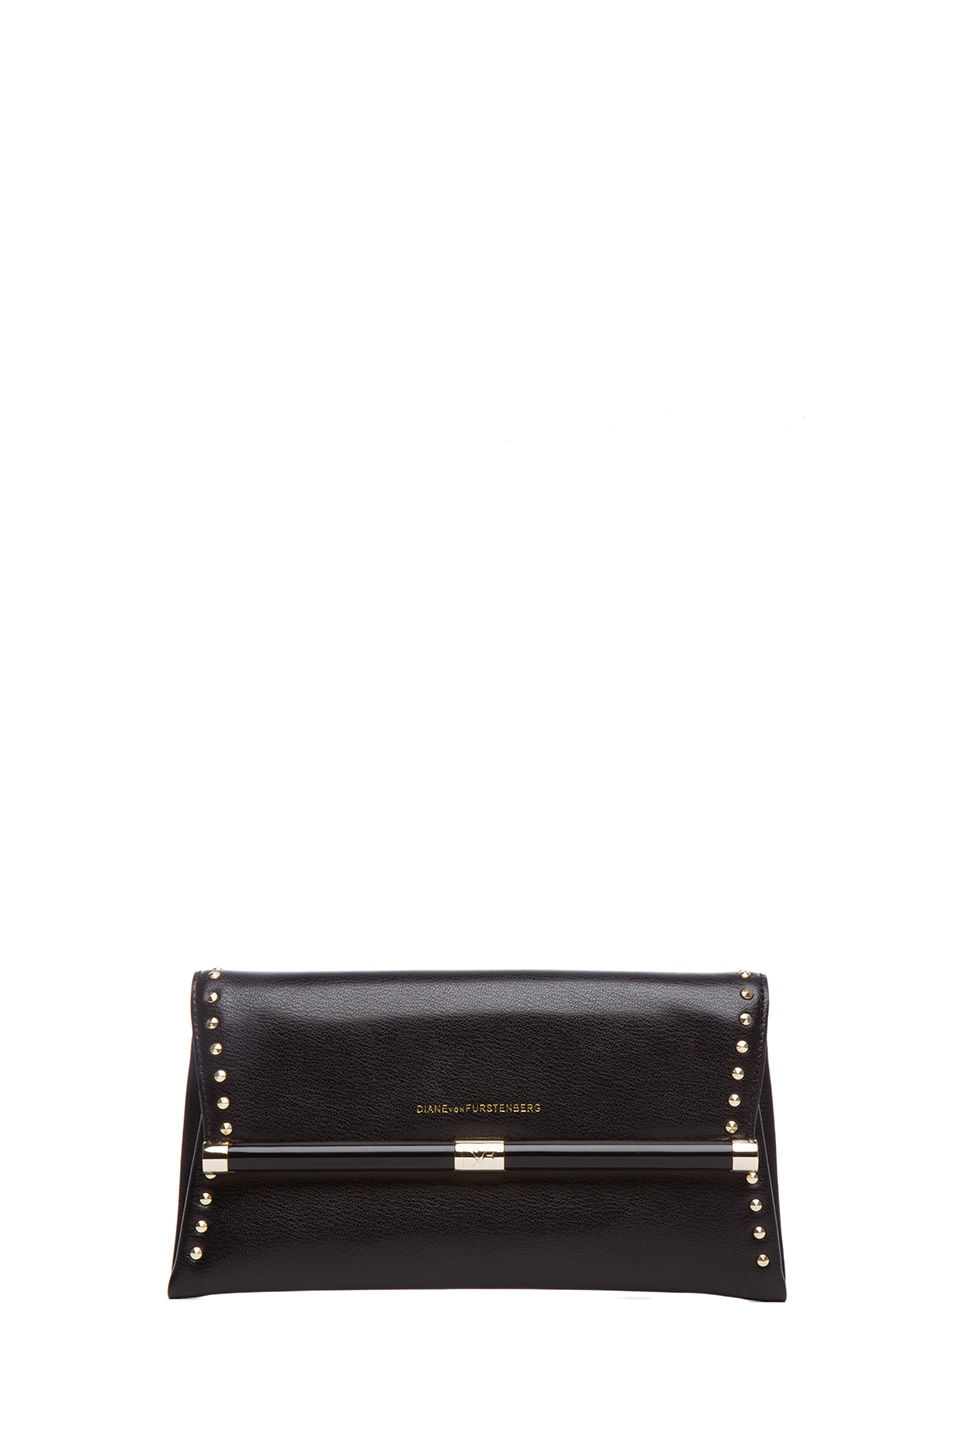 Image 1 of Diane von Furstenberg 440 Envelope Clutch in Black